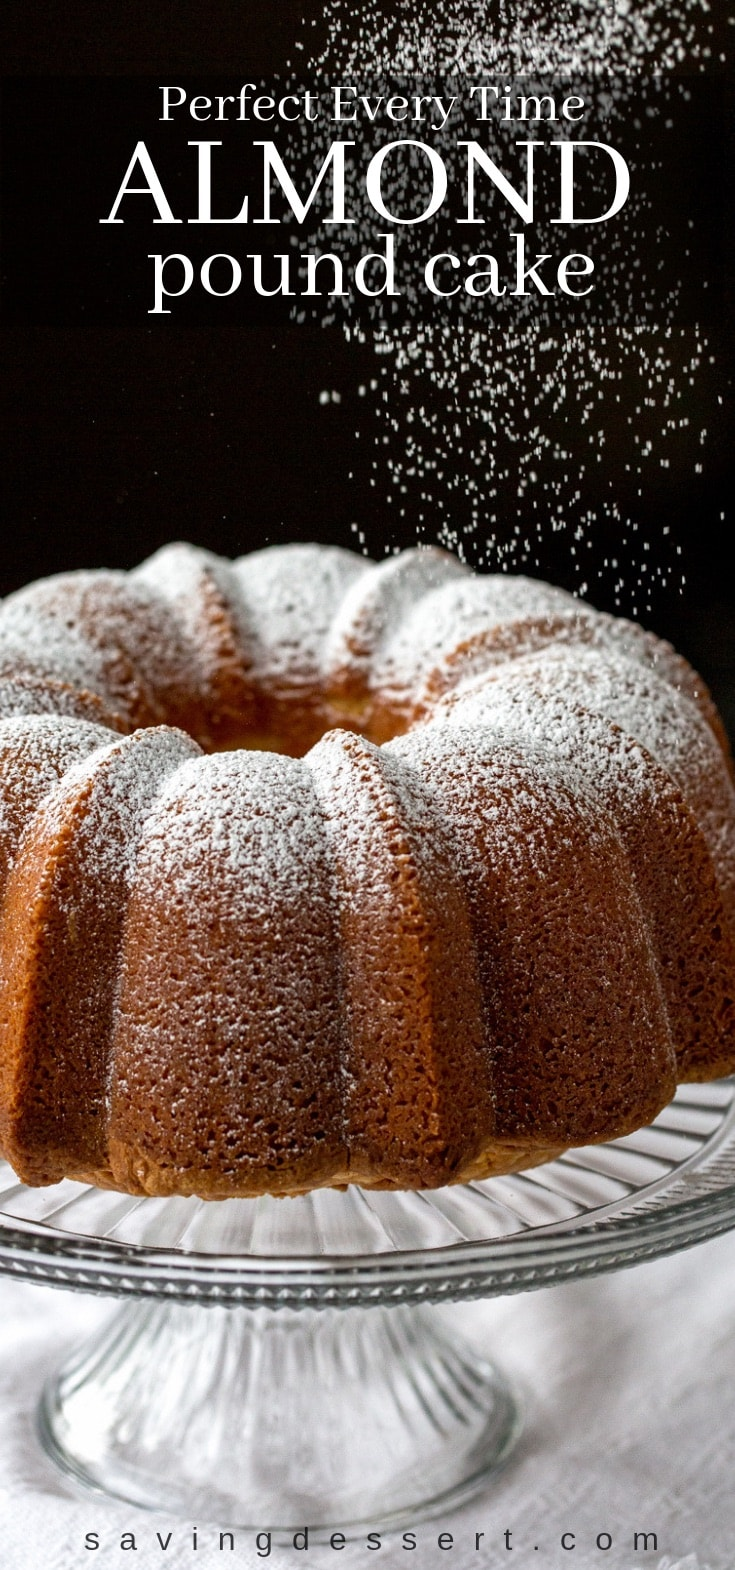 Pound cake sprinkled with powdered sugar